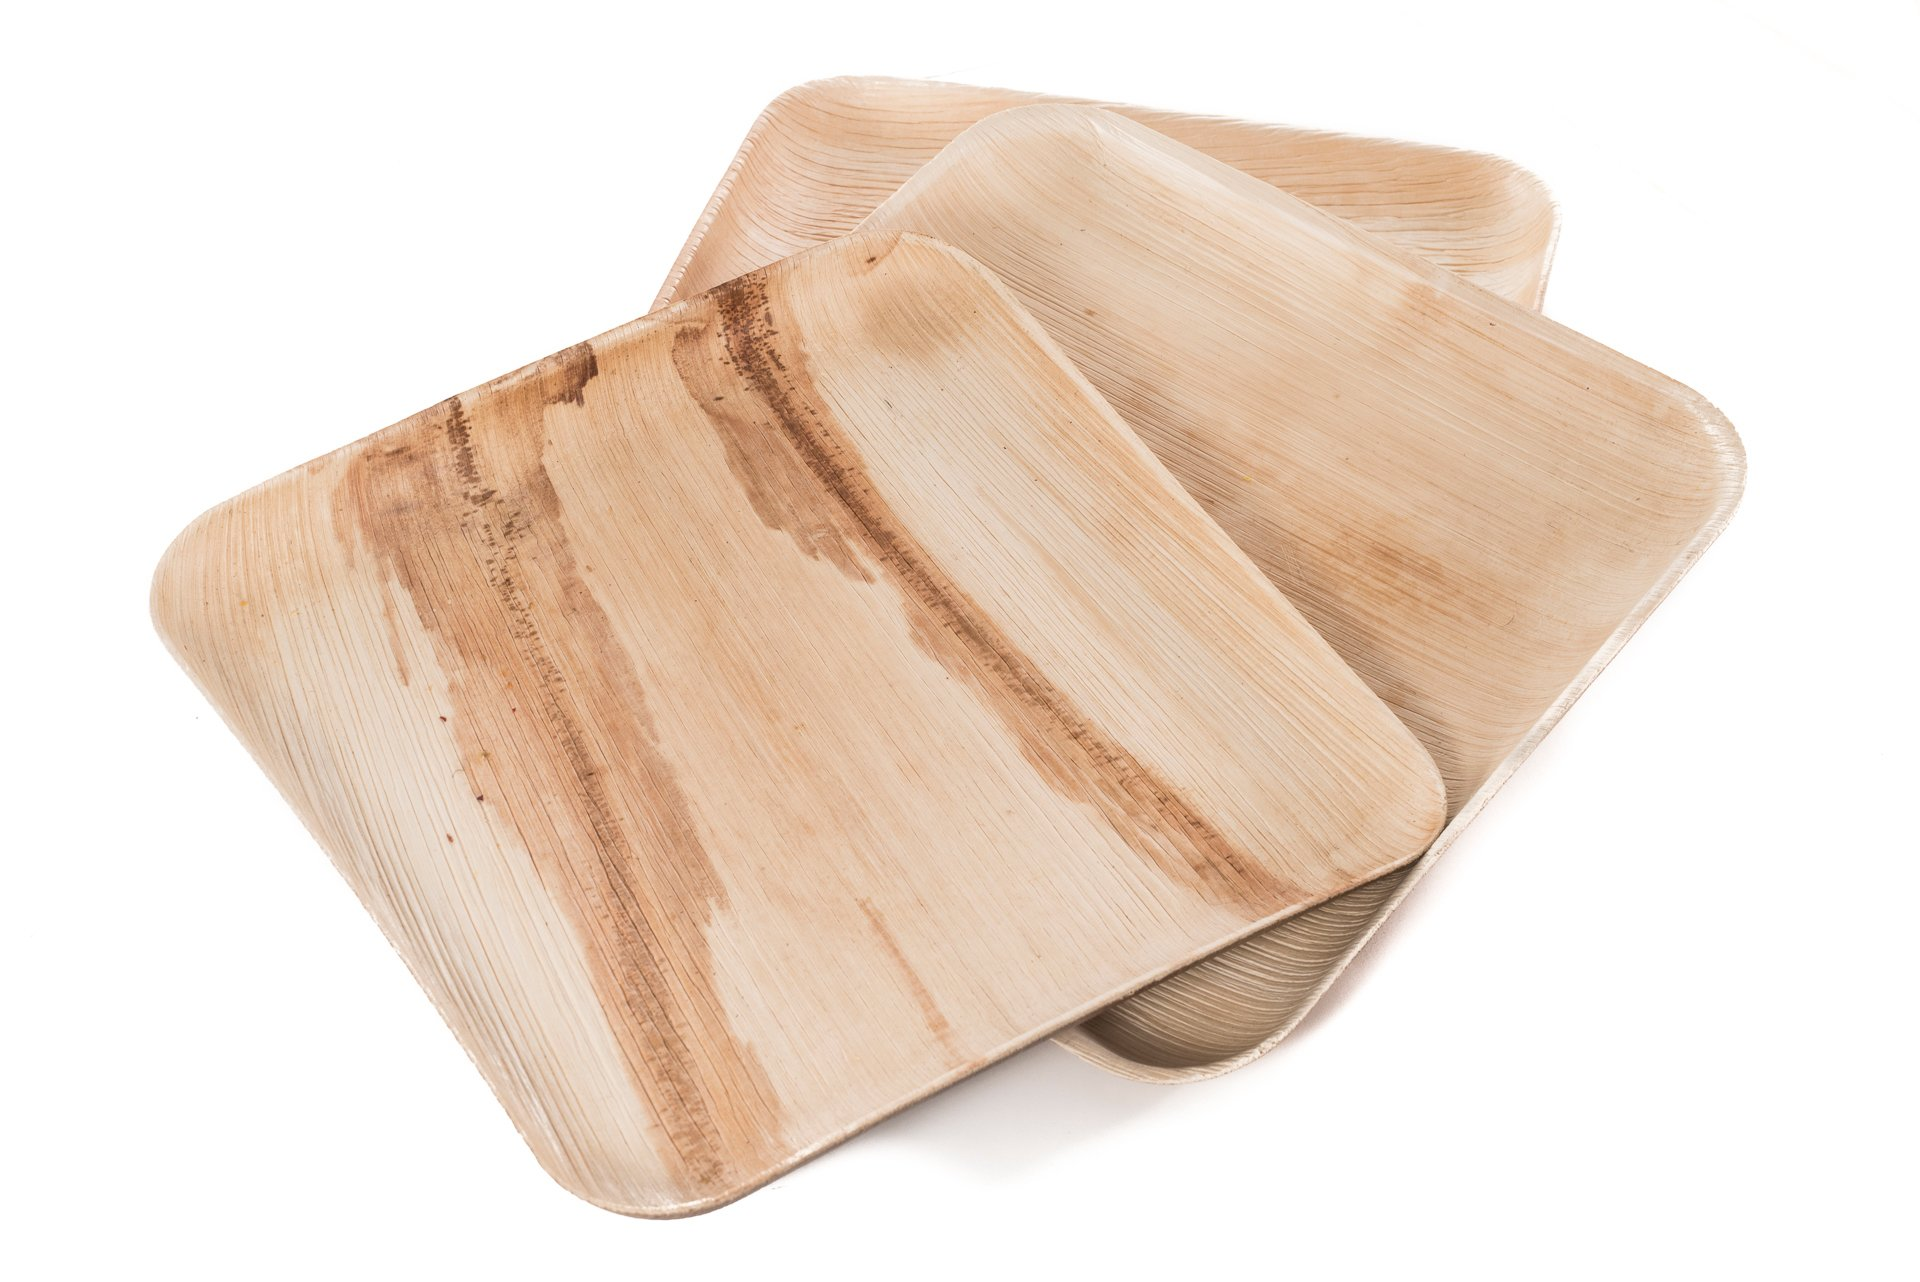 """9"""" Square Palm Leaf Plates - Pack of 25 - Disposable, Compostable, Natural, Tree Free, Sustainable, Eco-Friendly - Fancy Rustic Party Dinnerware and Utensils Like Wood, Bamboo by Clean Earth Goods (Image #4)"""